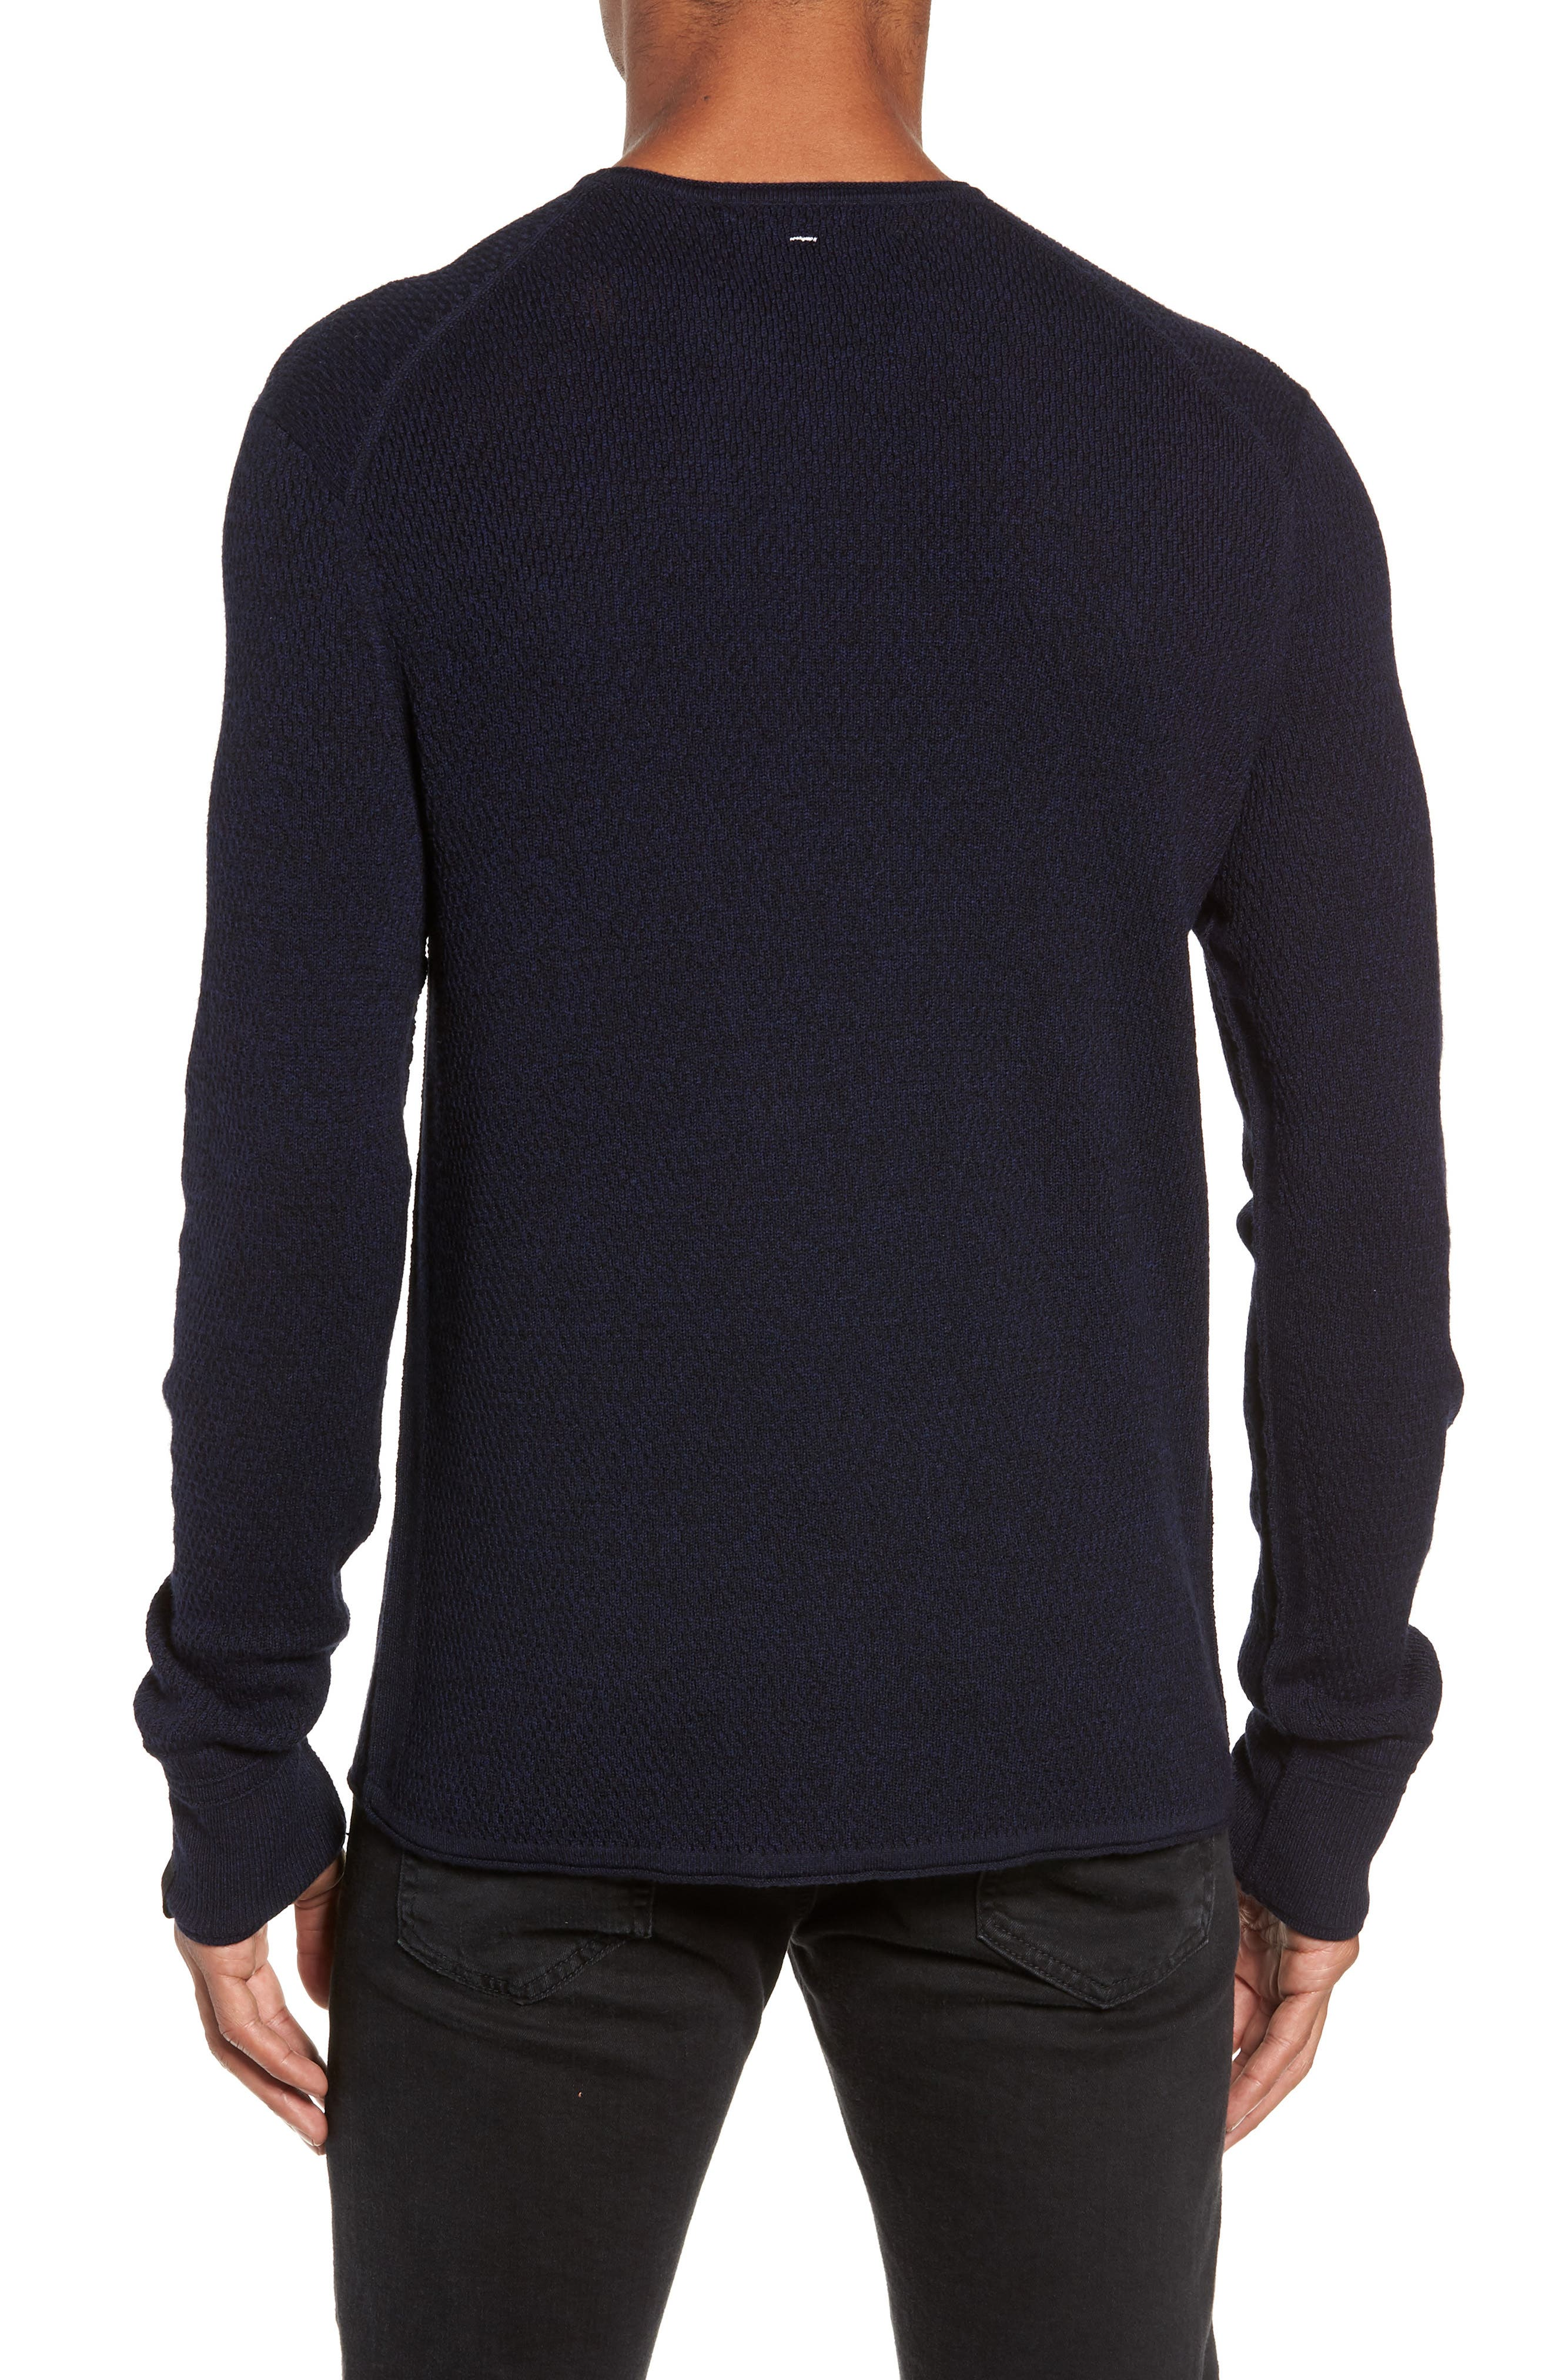 Gregory Wool Blend Crewneck Sweater,                             Alternate thumbnail 2, color,                             NAVY